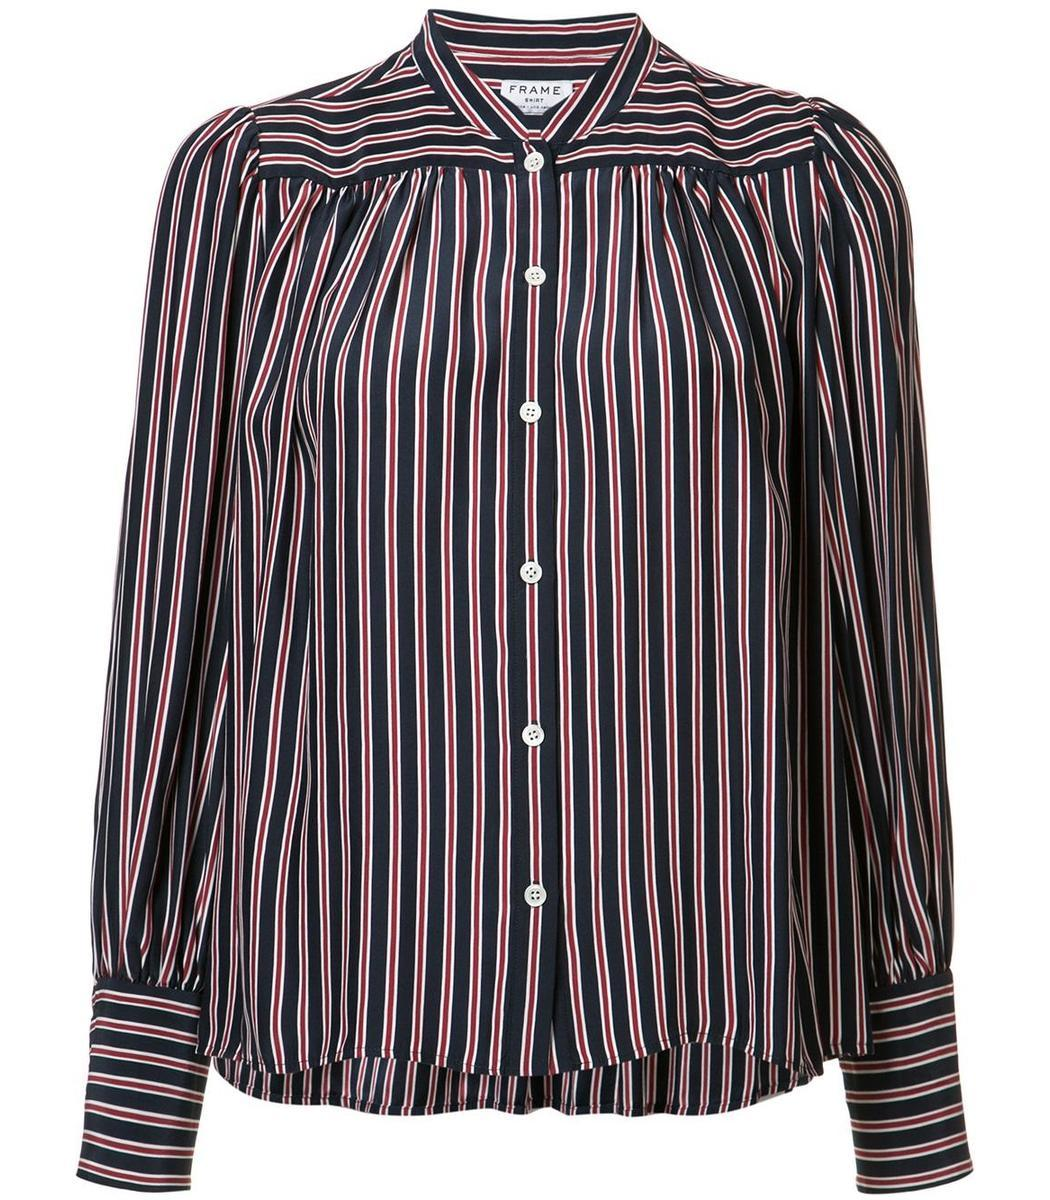 Frame navy red striped button down shirt in blue lyst for Red and white striped button down shirt